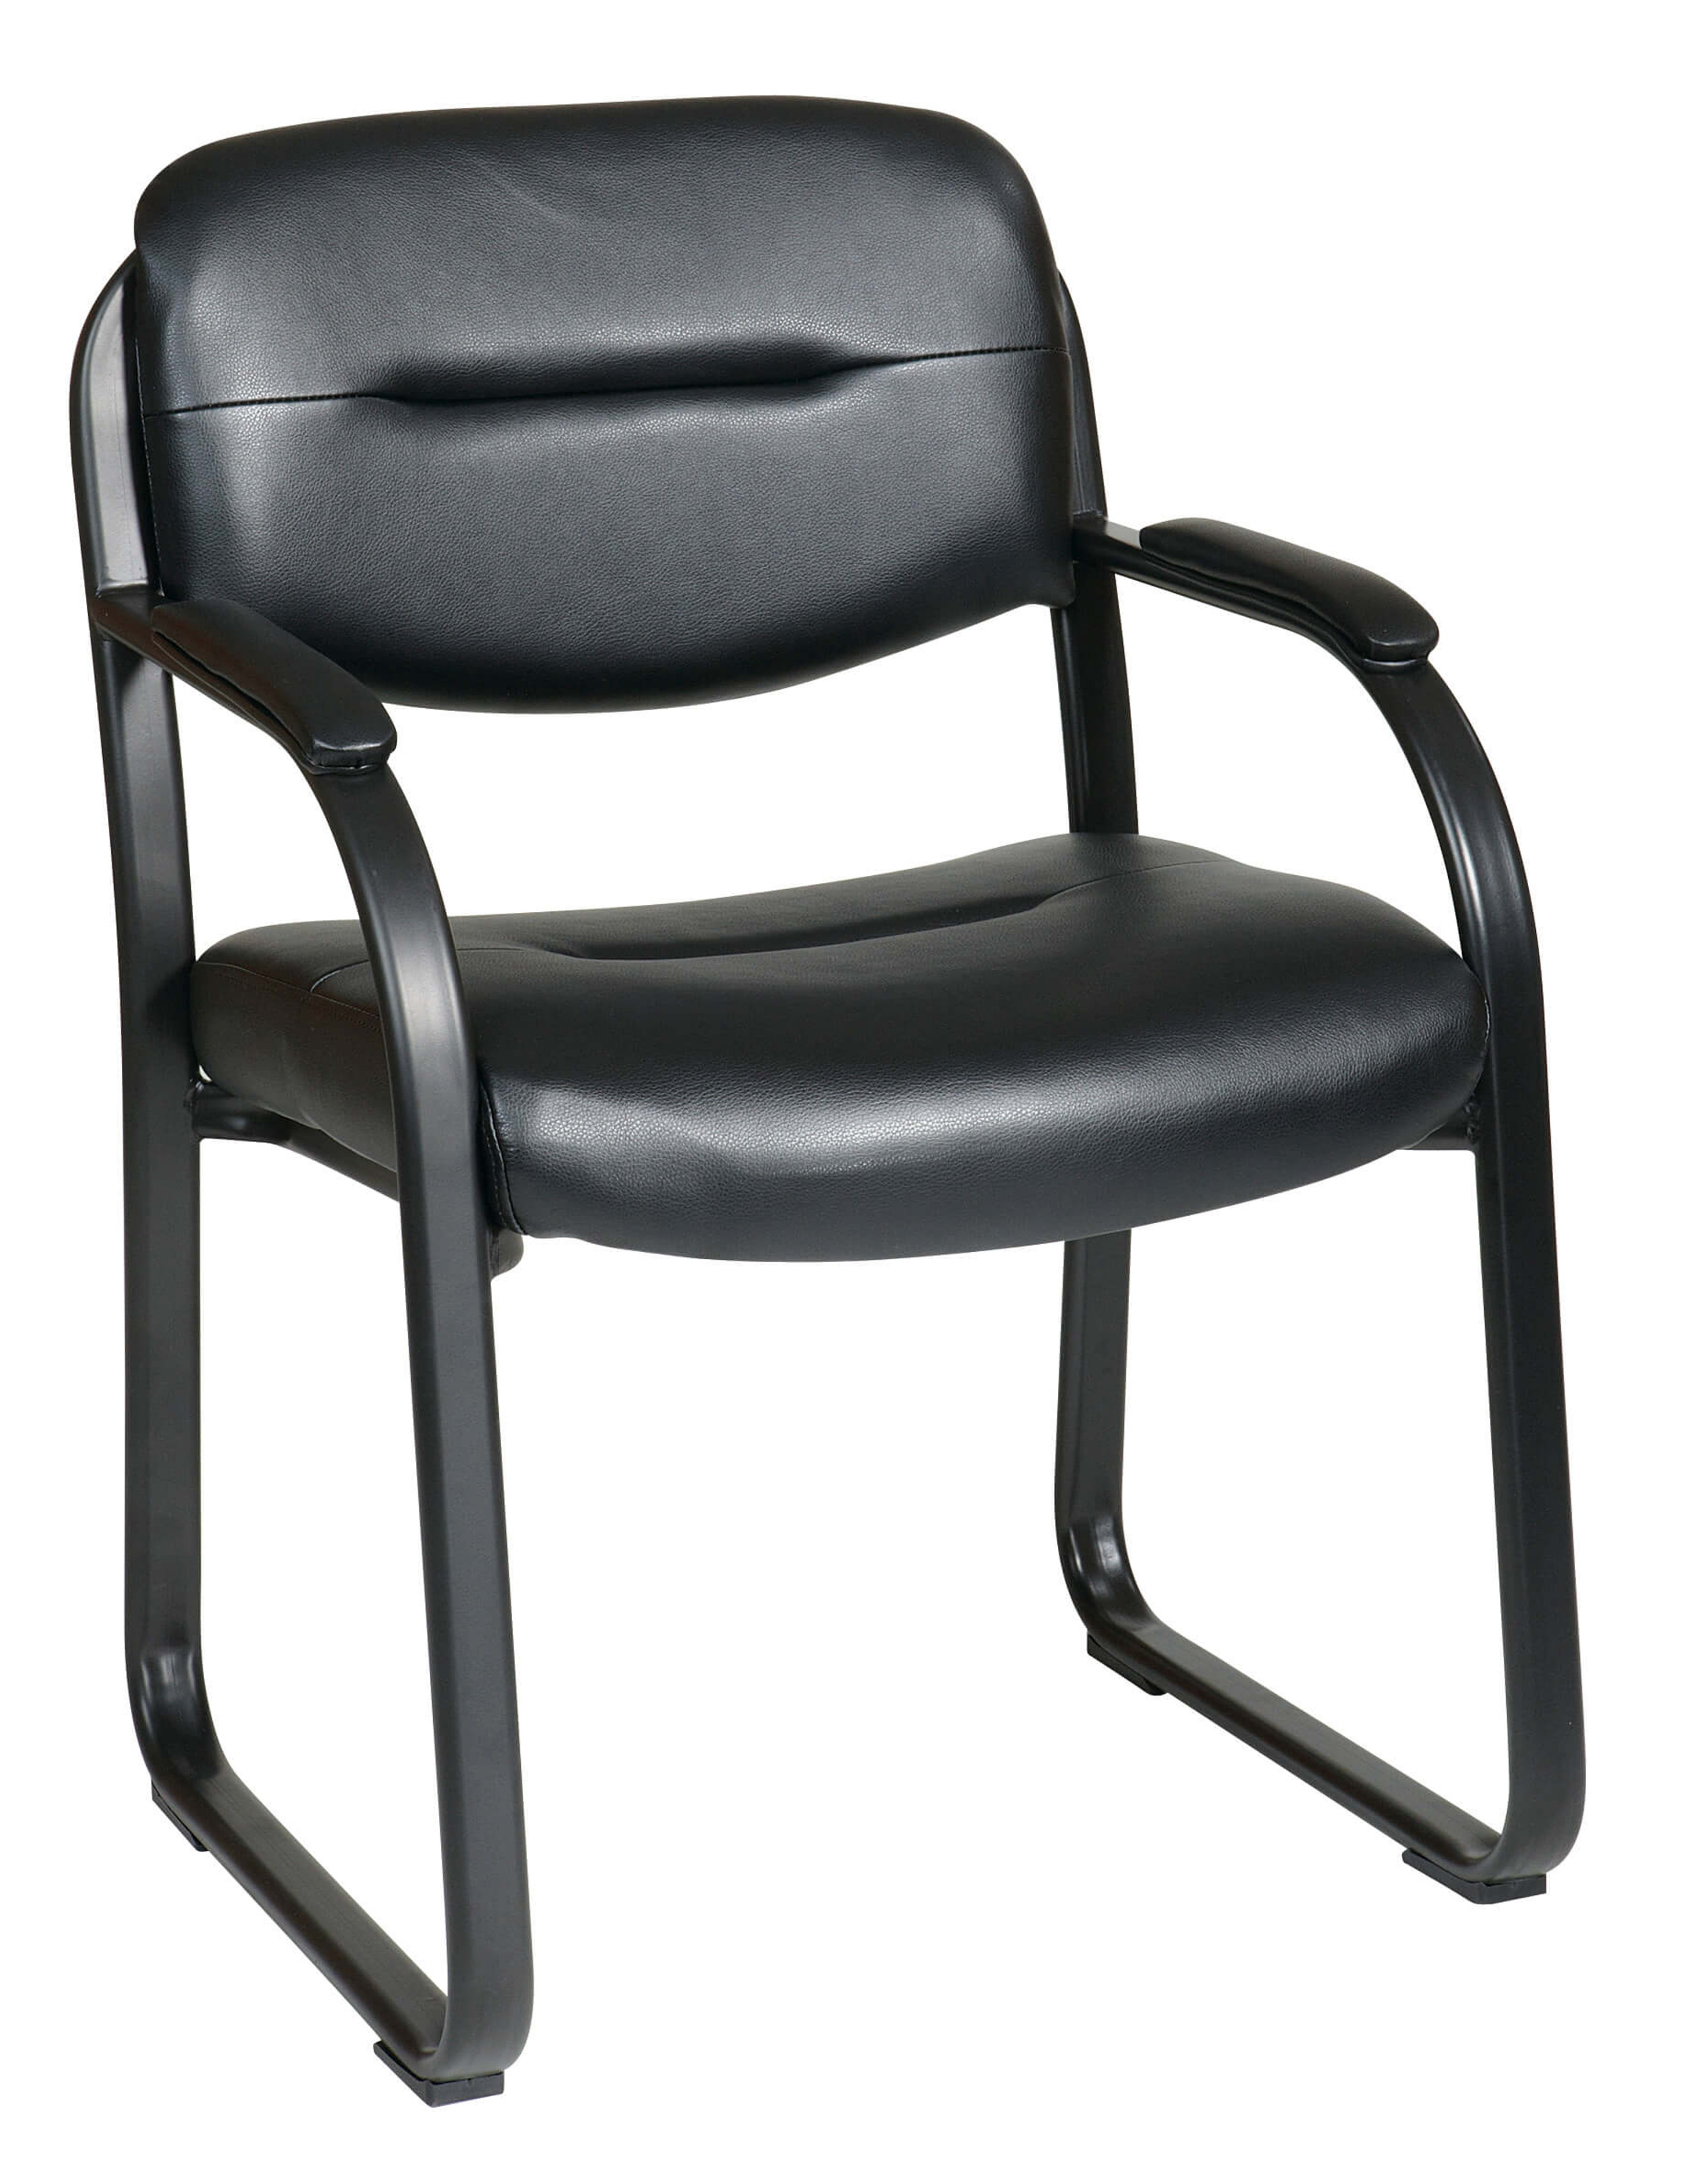 Side chairs with arms CUB FL1055 U6 PSO